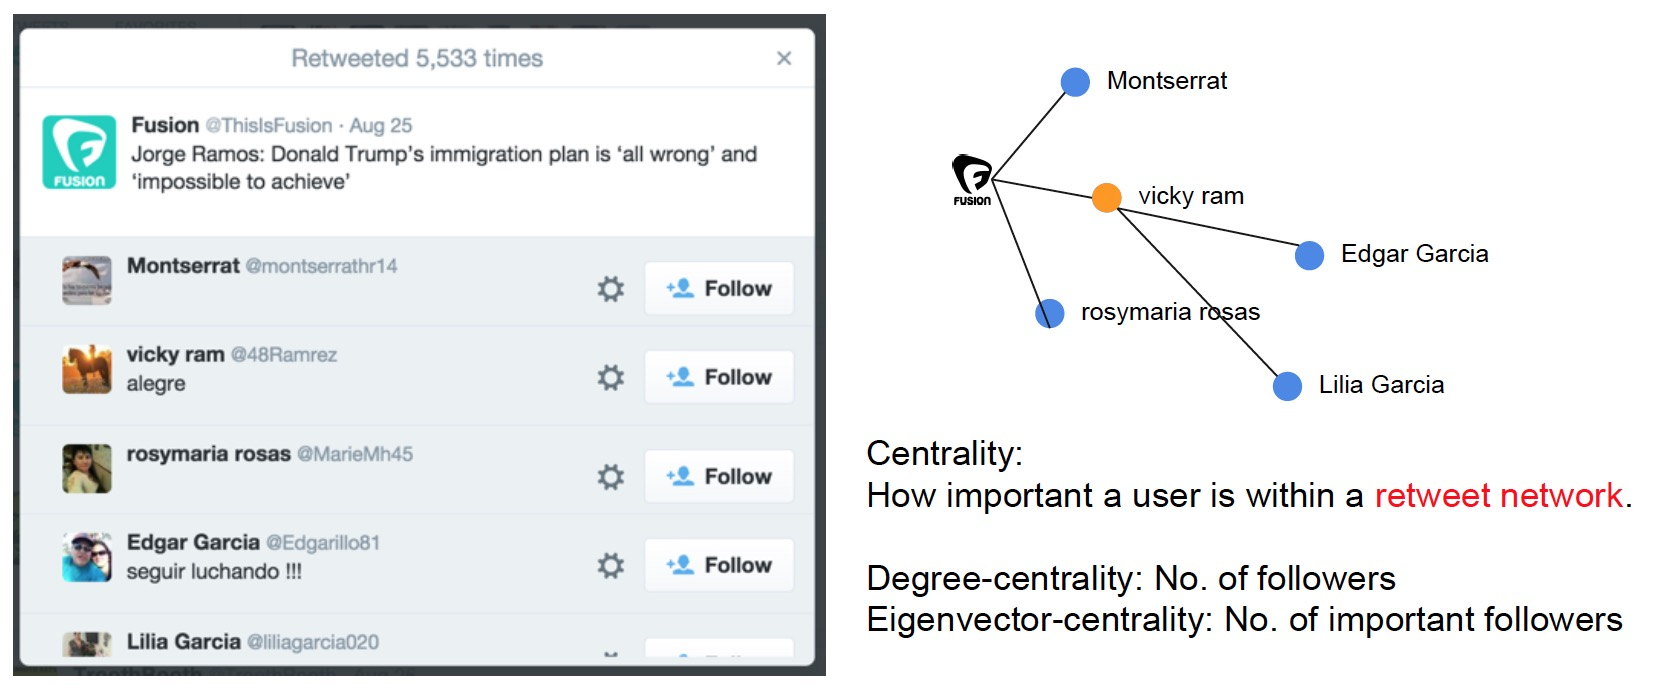 Find Twitter Influencers Through Social Network Analysis